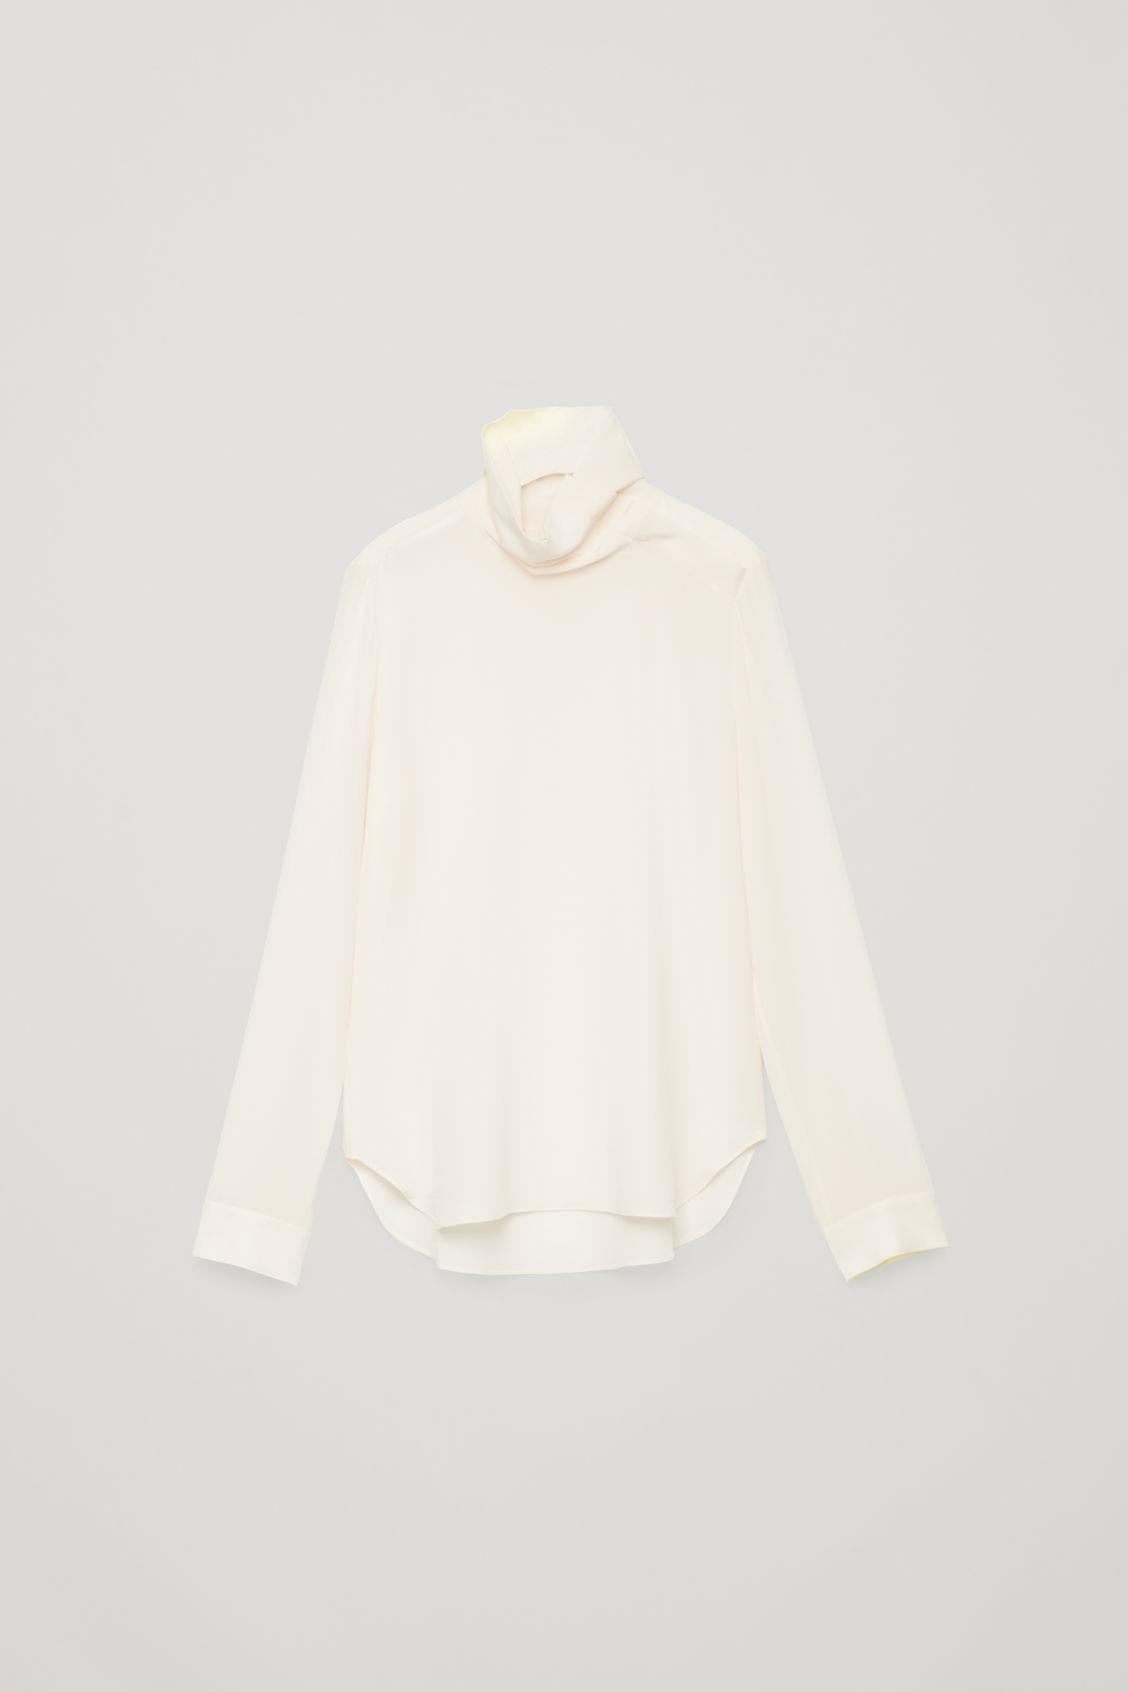 ba628c074657 Lyst - Cos High-neck Silk Blouse in White